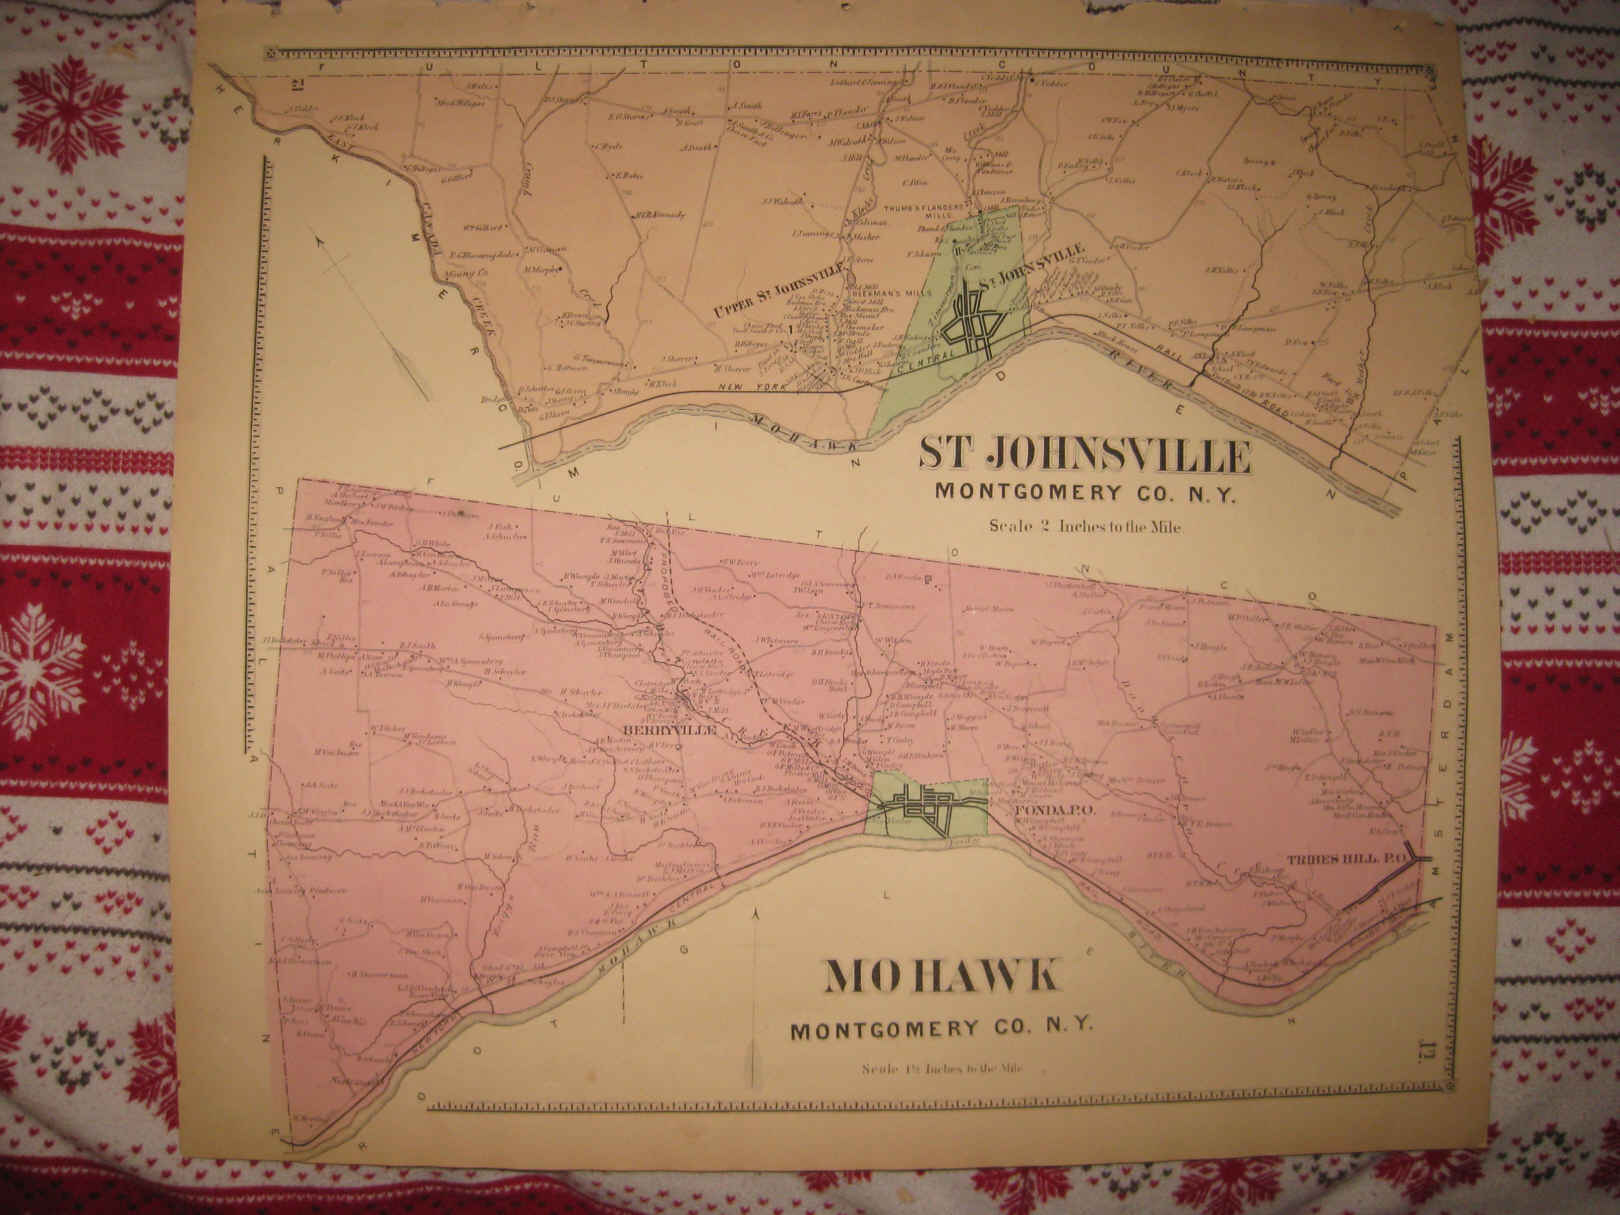 ANTIQUE ST JOHNSVILLE MOHAWK FONDA TRIBES HILL MONTGOMERY COUNTY NEW YORK  MAP NR | eBay